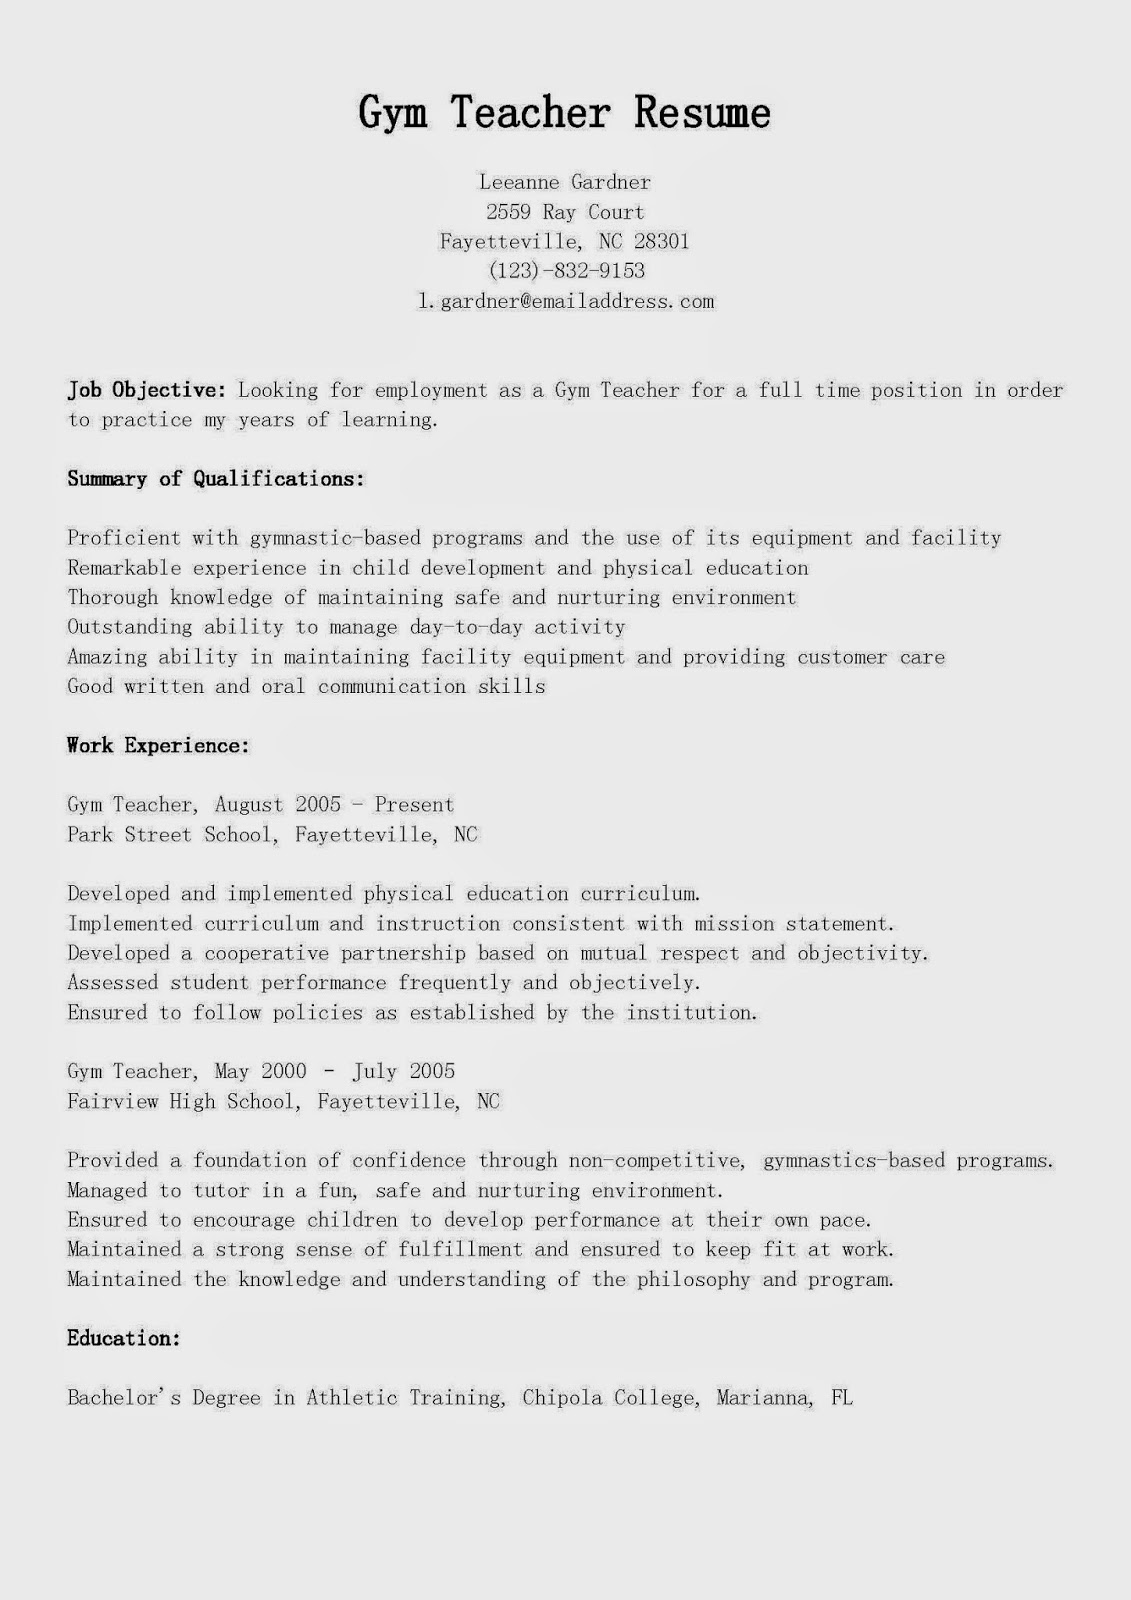 Resume Samples Gym Teacher Resume Sample